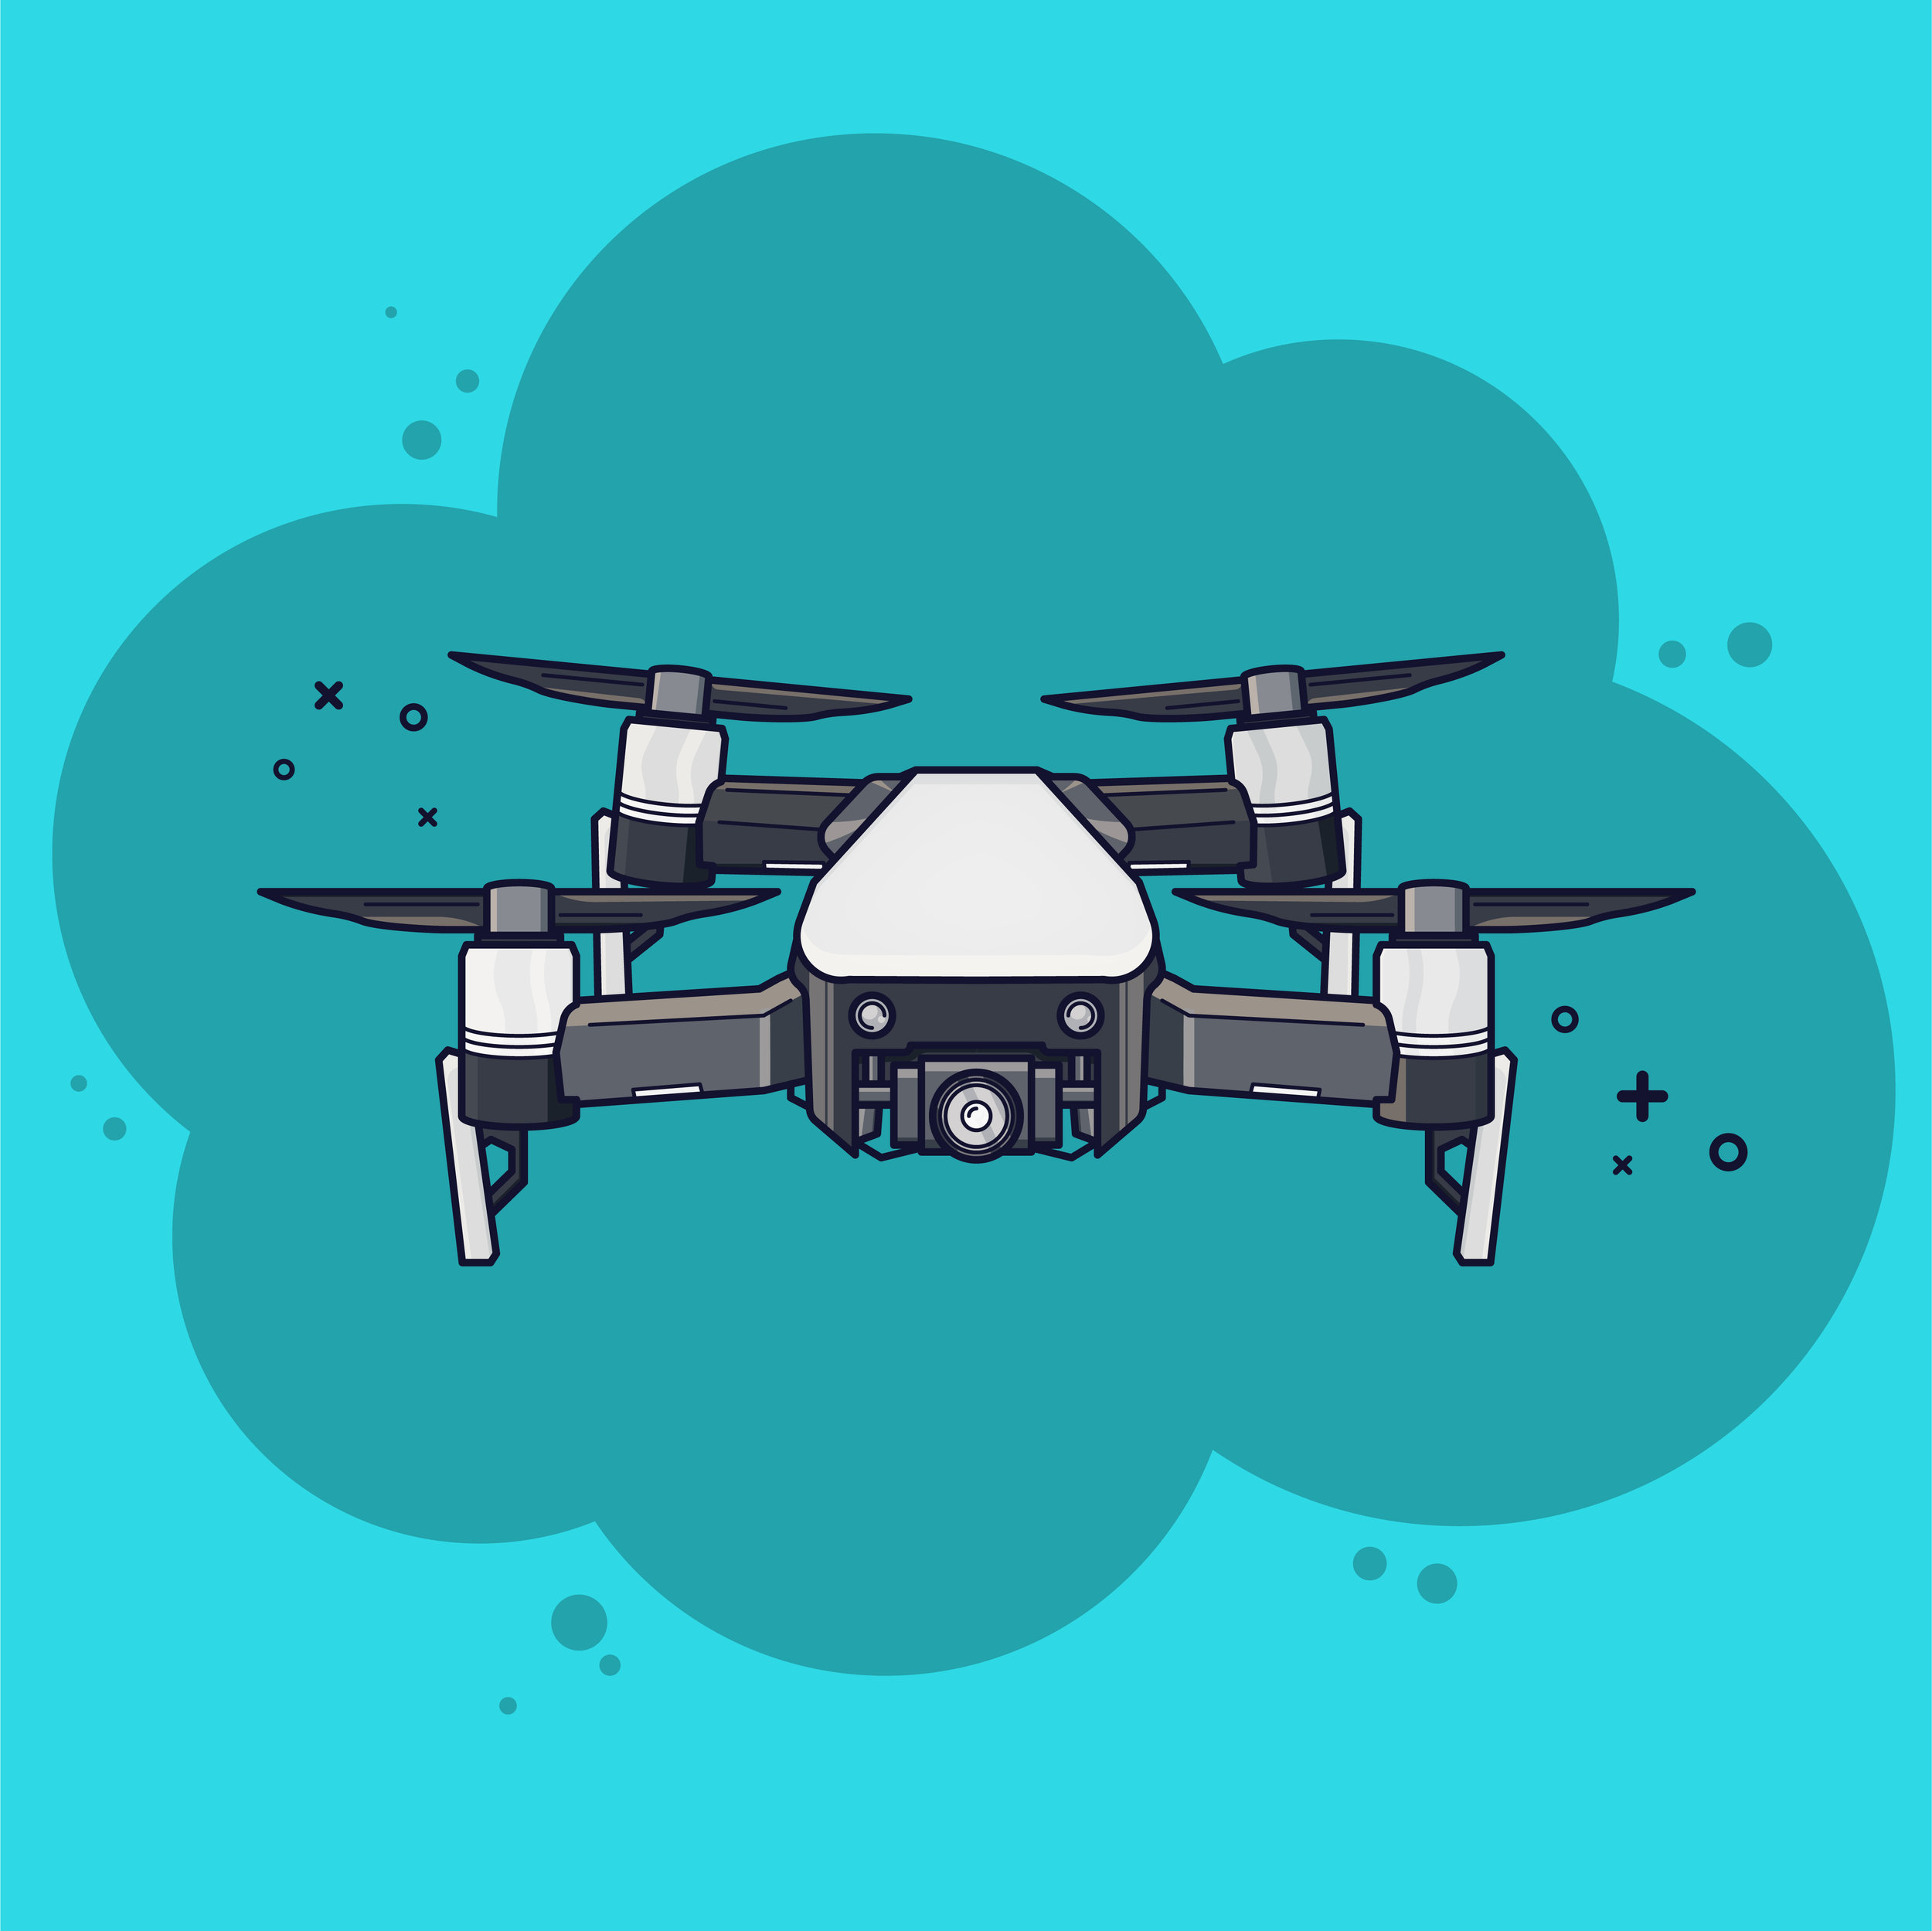 drone illustration-04.jpg